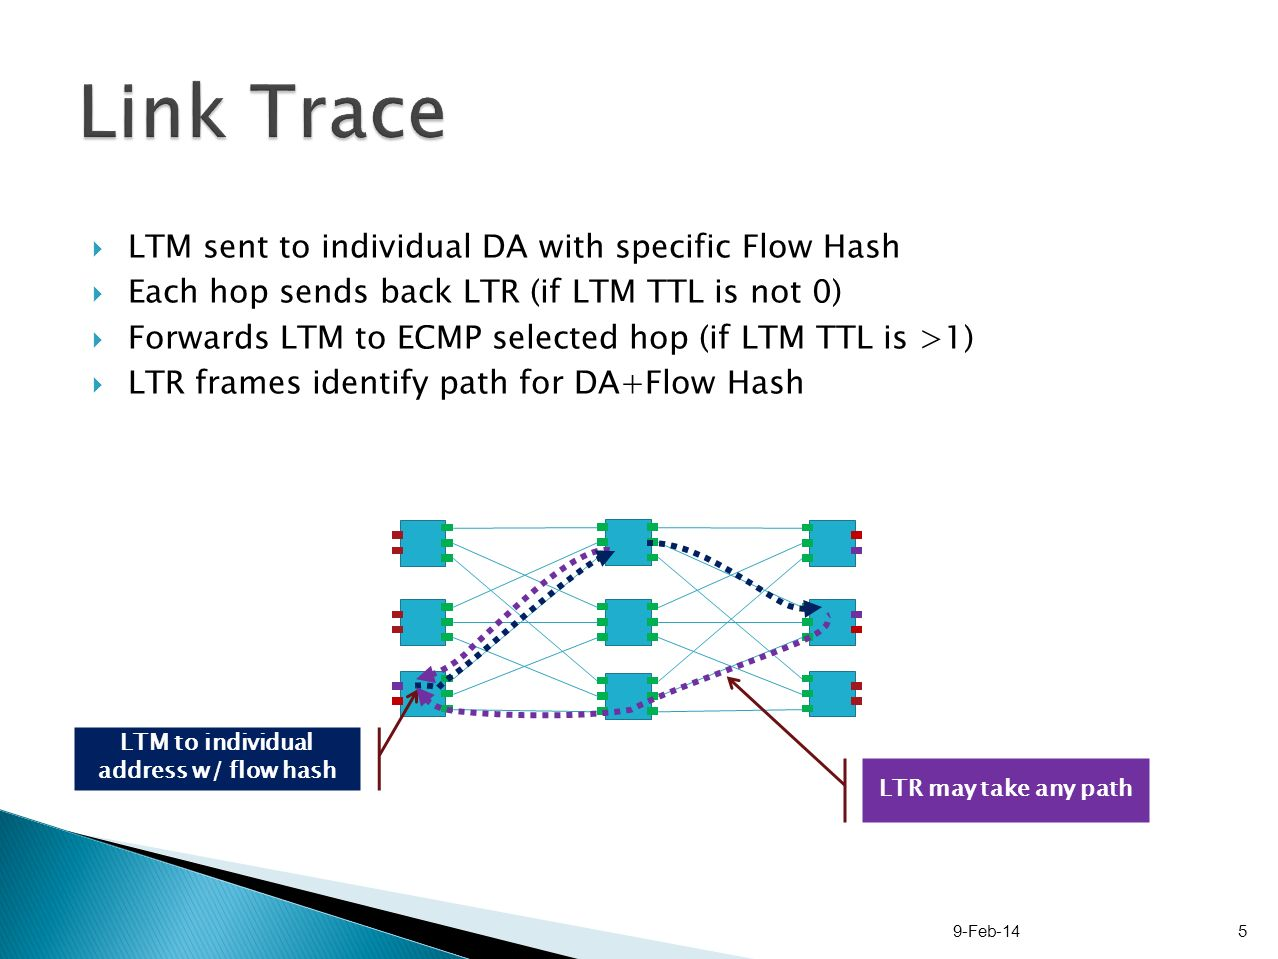 LTM sent to individual DA with specific Flow Hash Each hop sends back LTR (if LTM TTL is not 0) Forwards LTM to ECMP selected hop (if LTM TTL is >1) LTR frames identify path for DA+Flow Hash 9-Feb-145 LTM to individual address w/ flow hash LTR may take any path